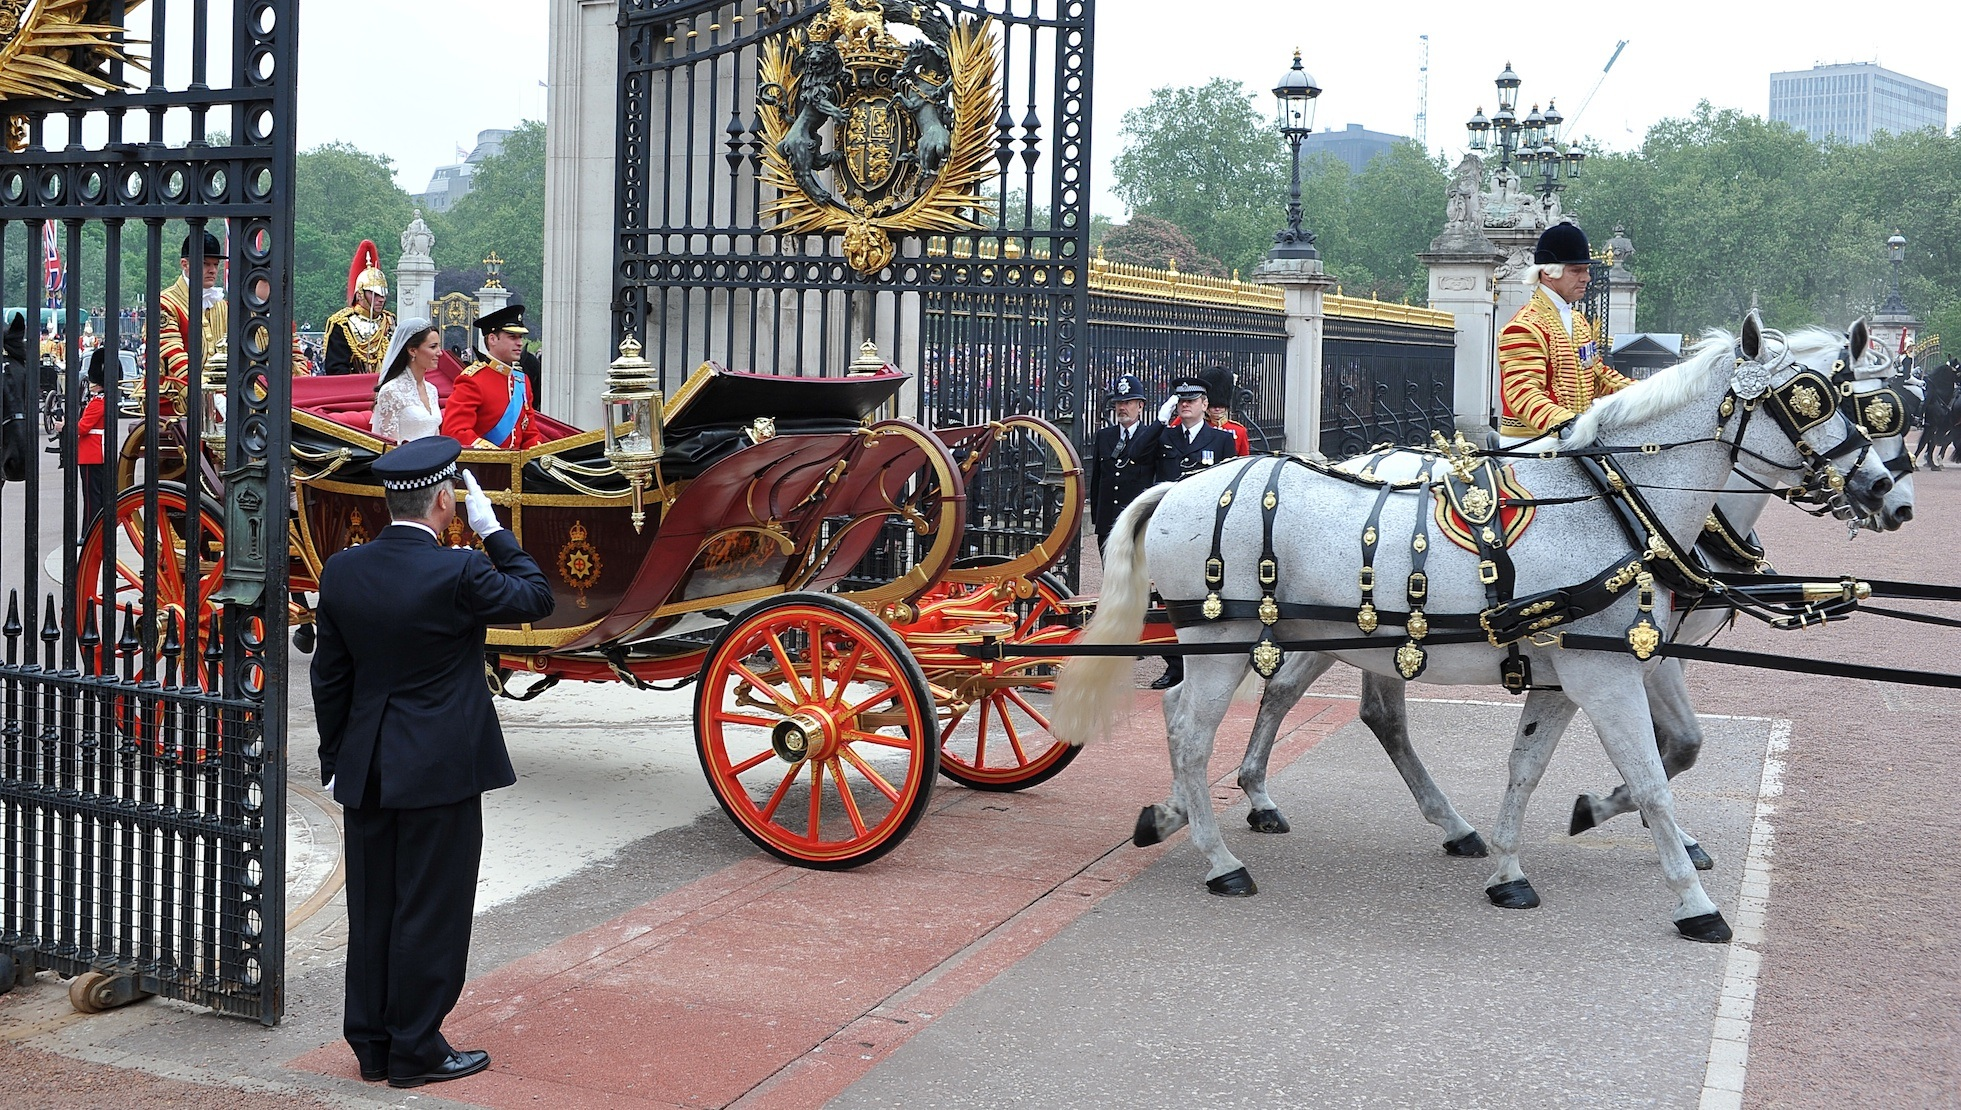 Prince William and Kate Middleton wedding horse and carriage